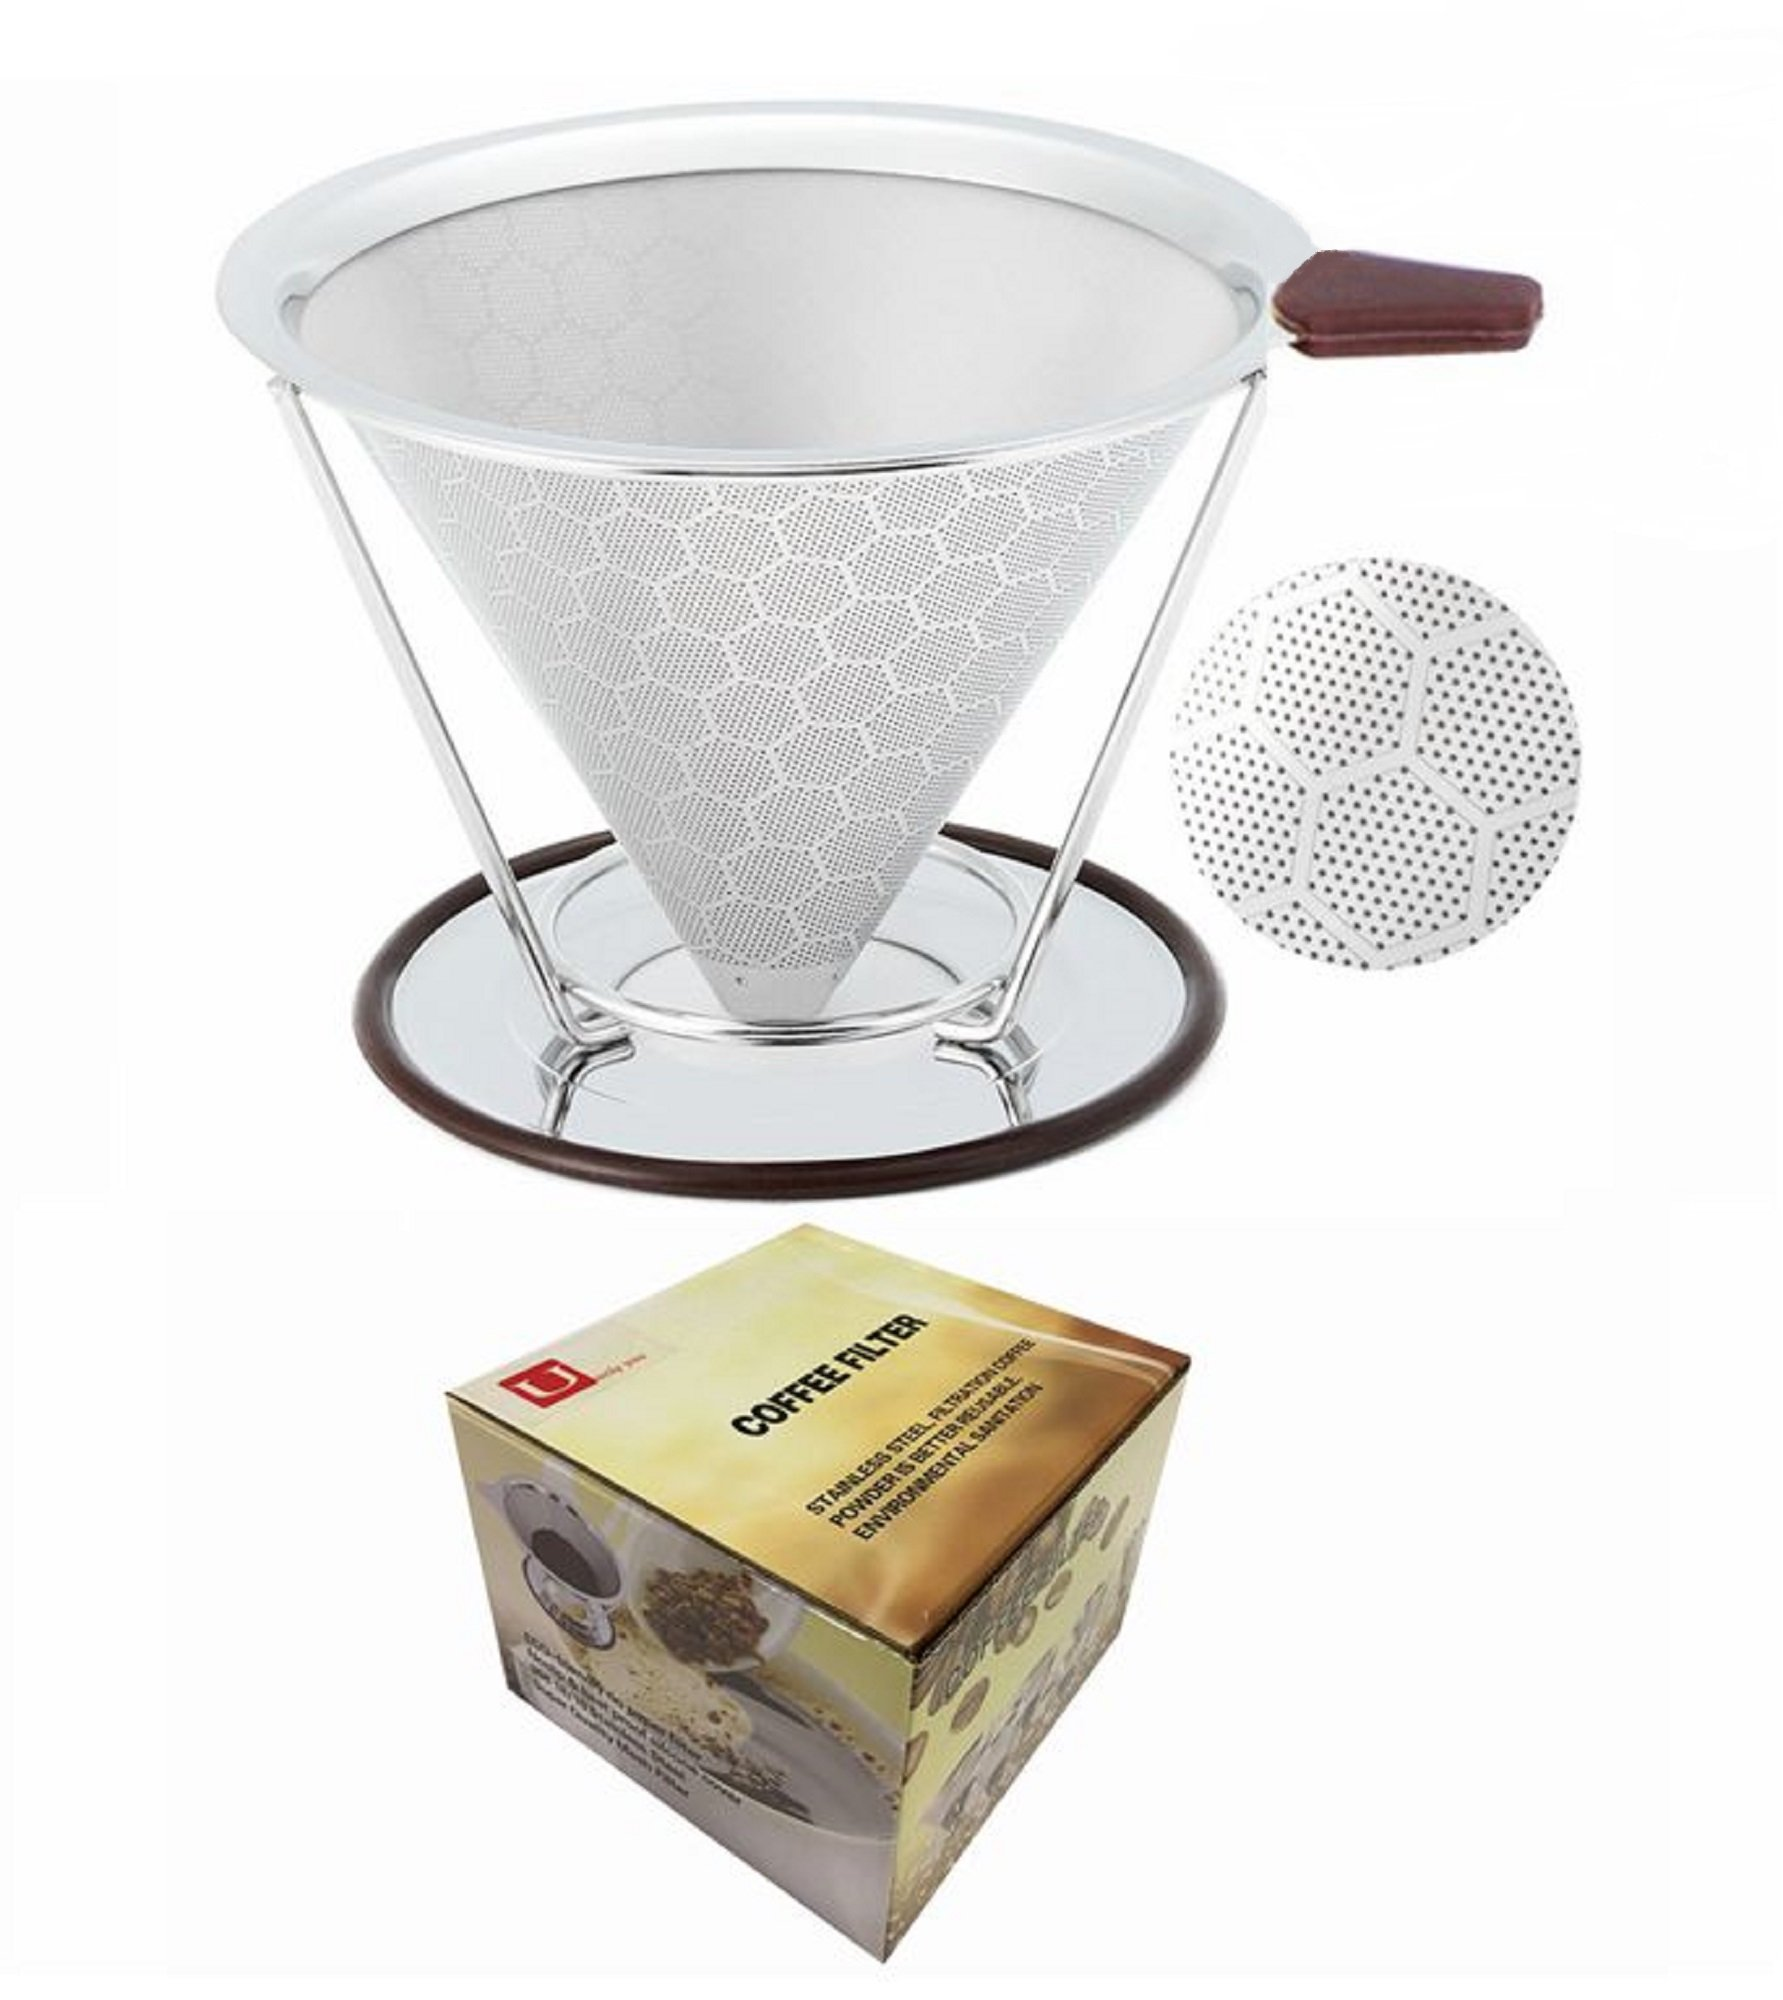 Reusable Coffee Filter Permanent Stainless Steel Coffee Dripper with Separate Stand,Double Layered Filter,Fashion Honeycomb Design,Pour Over Coffee Dripper for 1-4 Cups by U Only You (Stainless Steel)